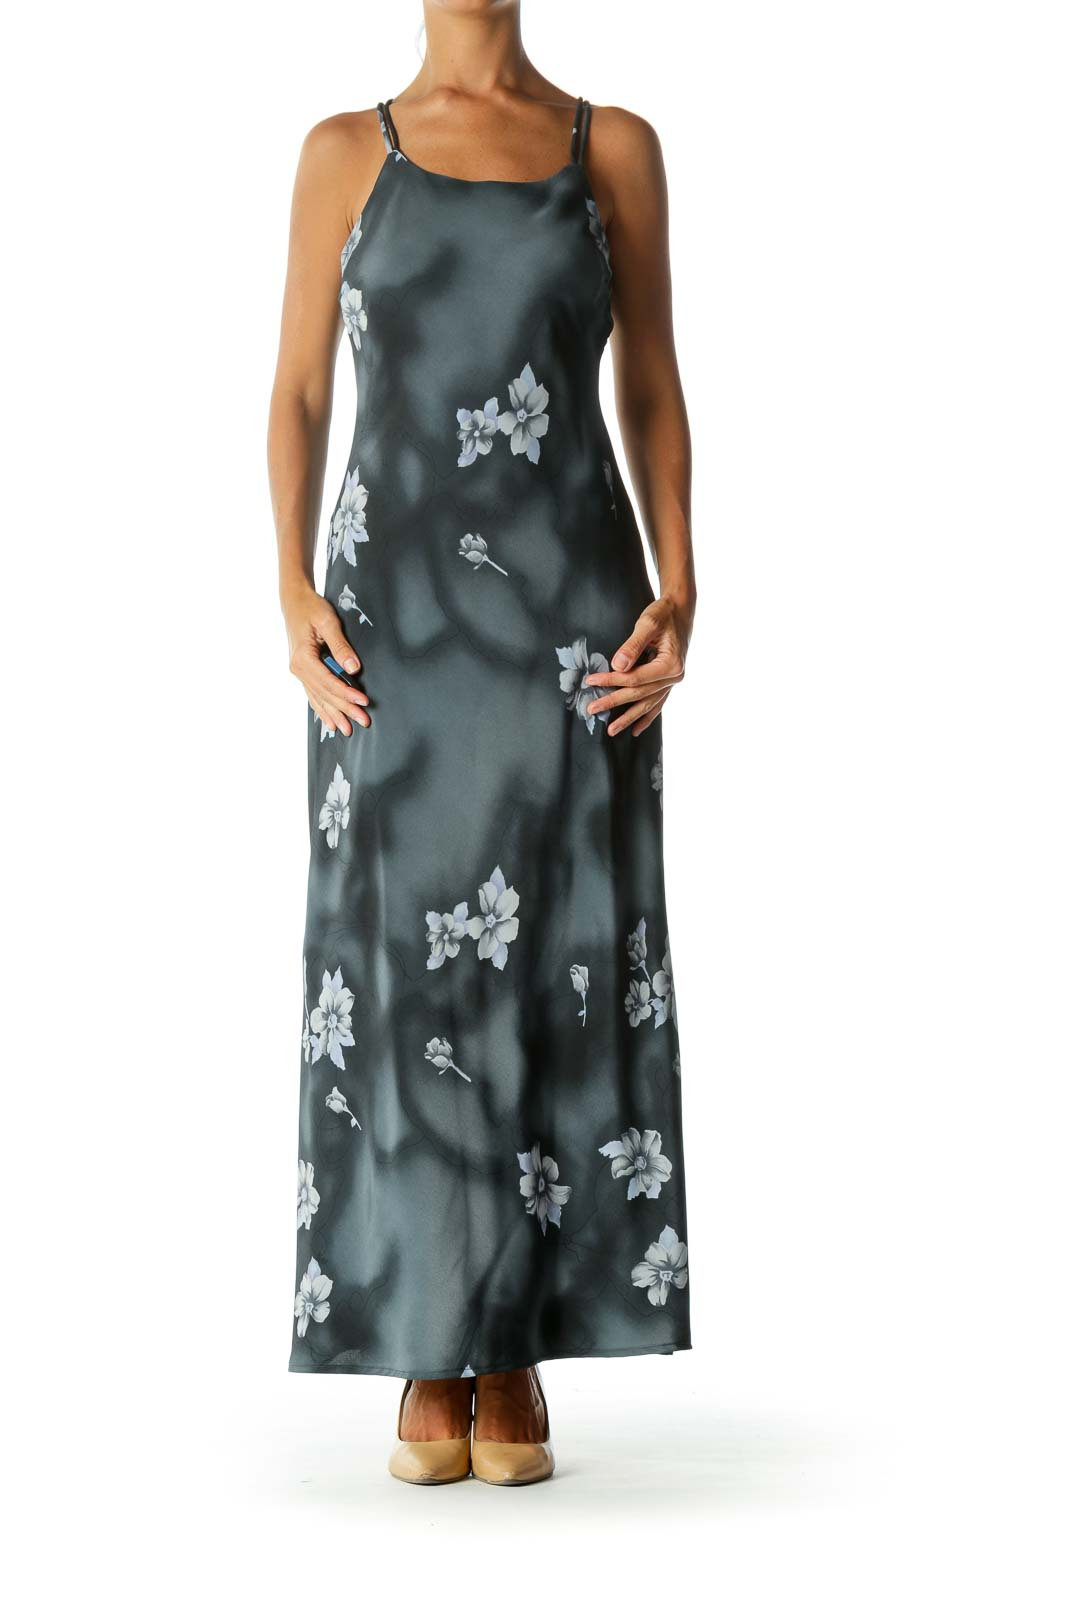 93af4848212 Shop Navy Floral Spaghetti Strap Back-Detail Maxi Dress clothing and ...